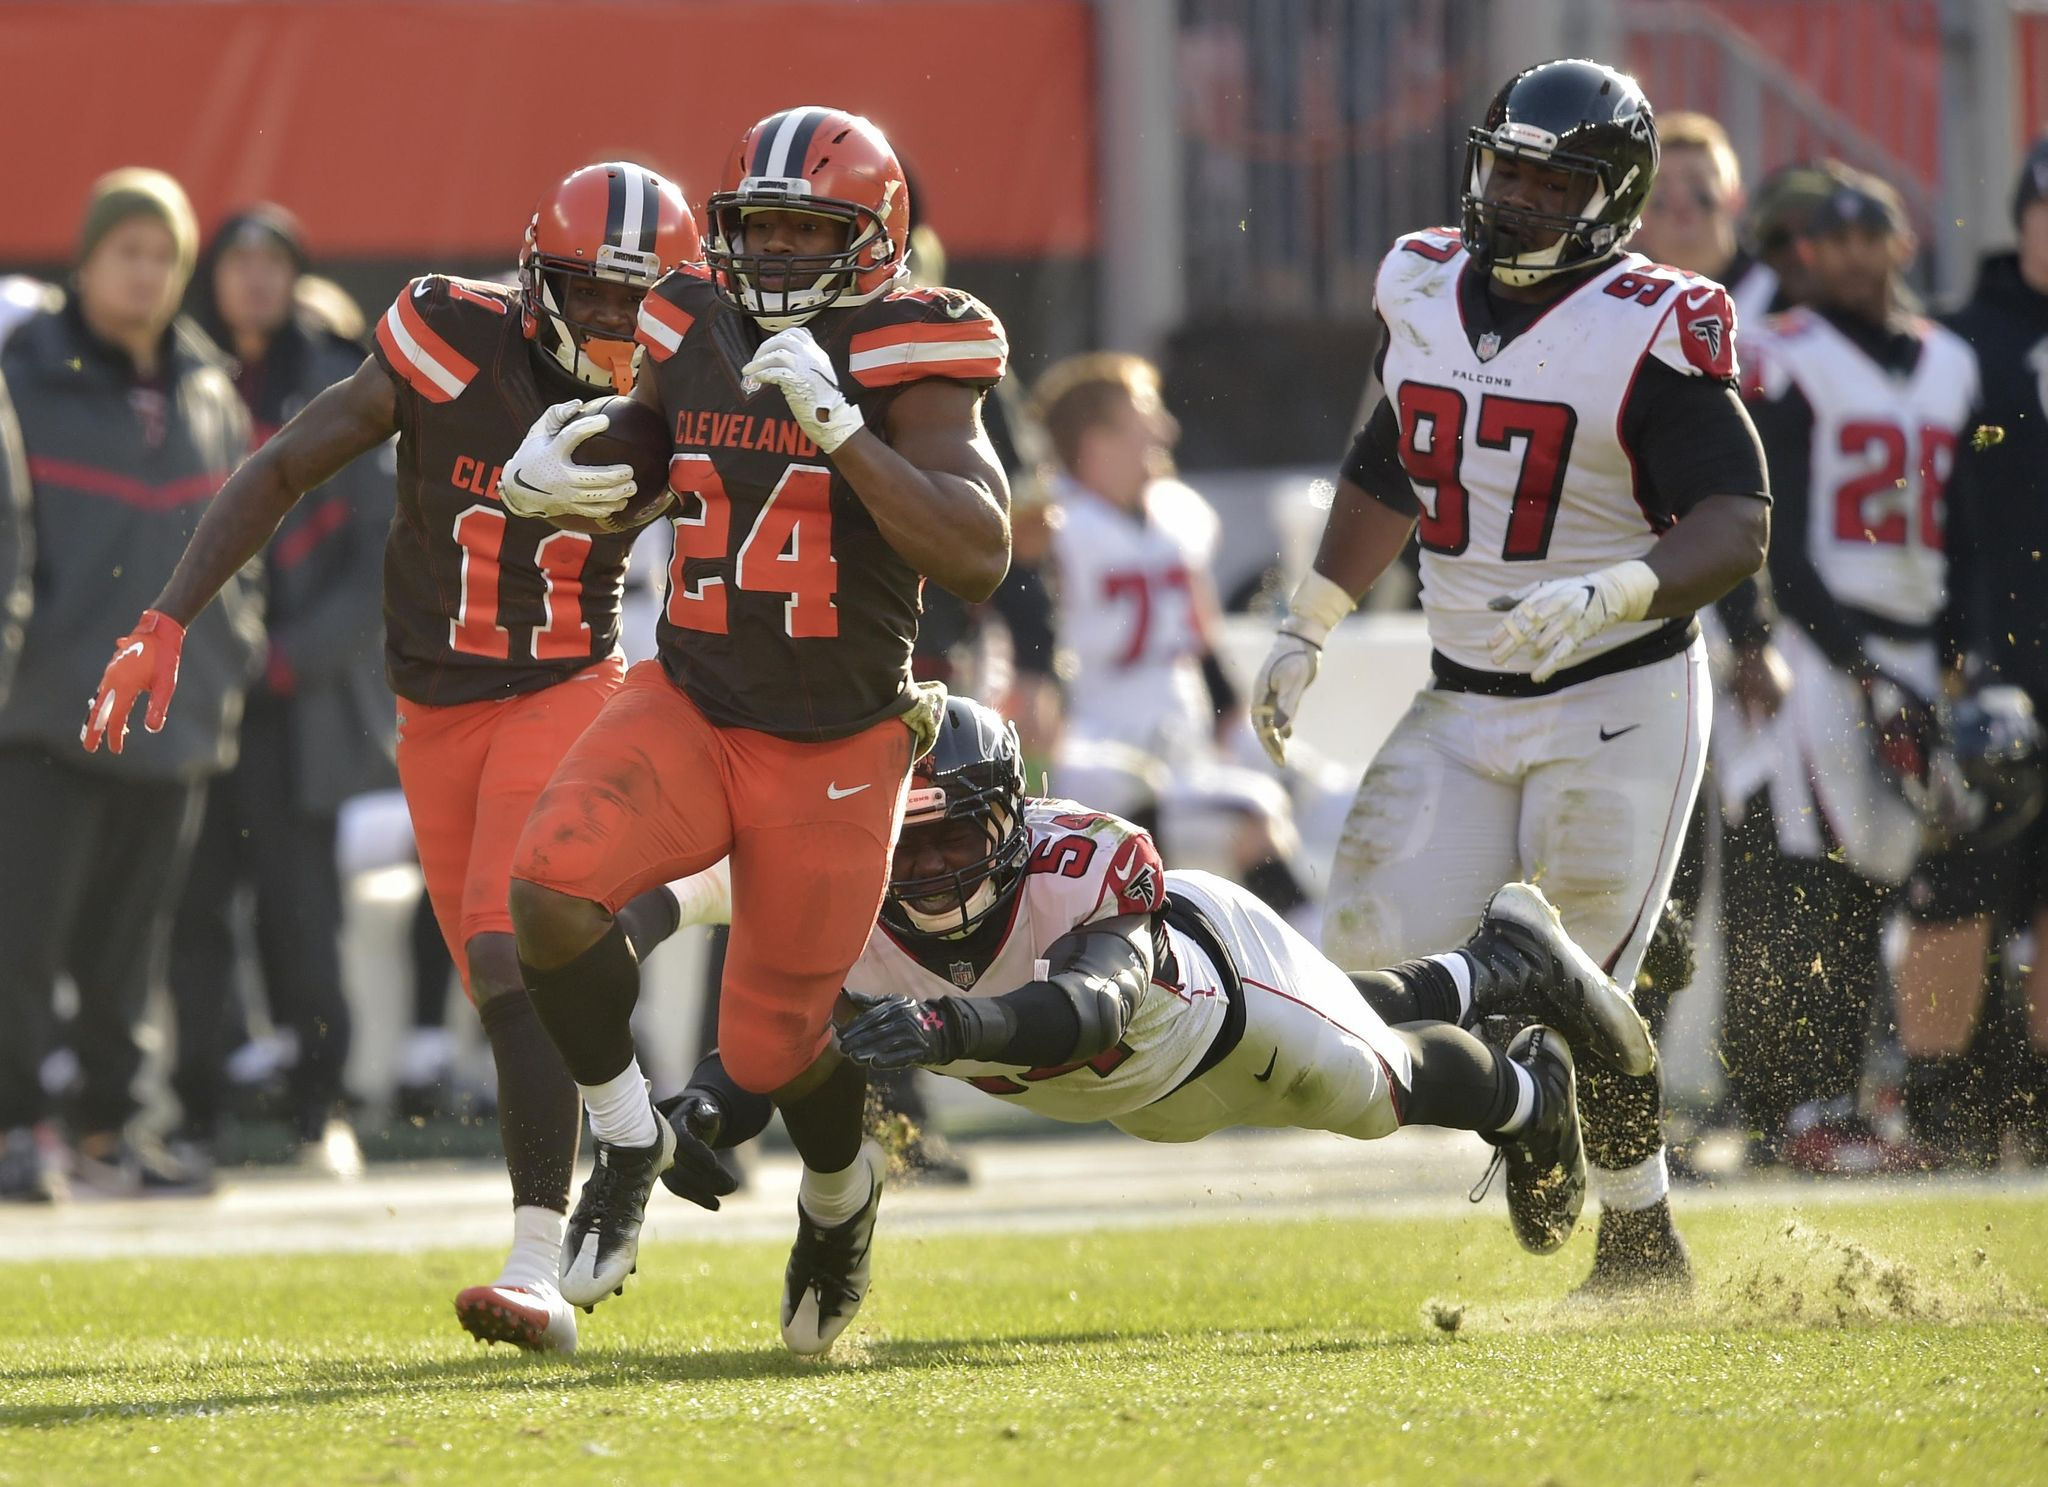 Falcons_browns_football_41467_s2048x1487